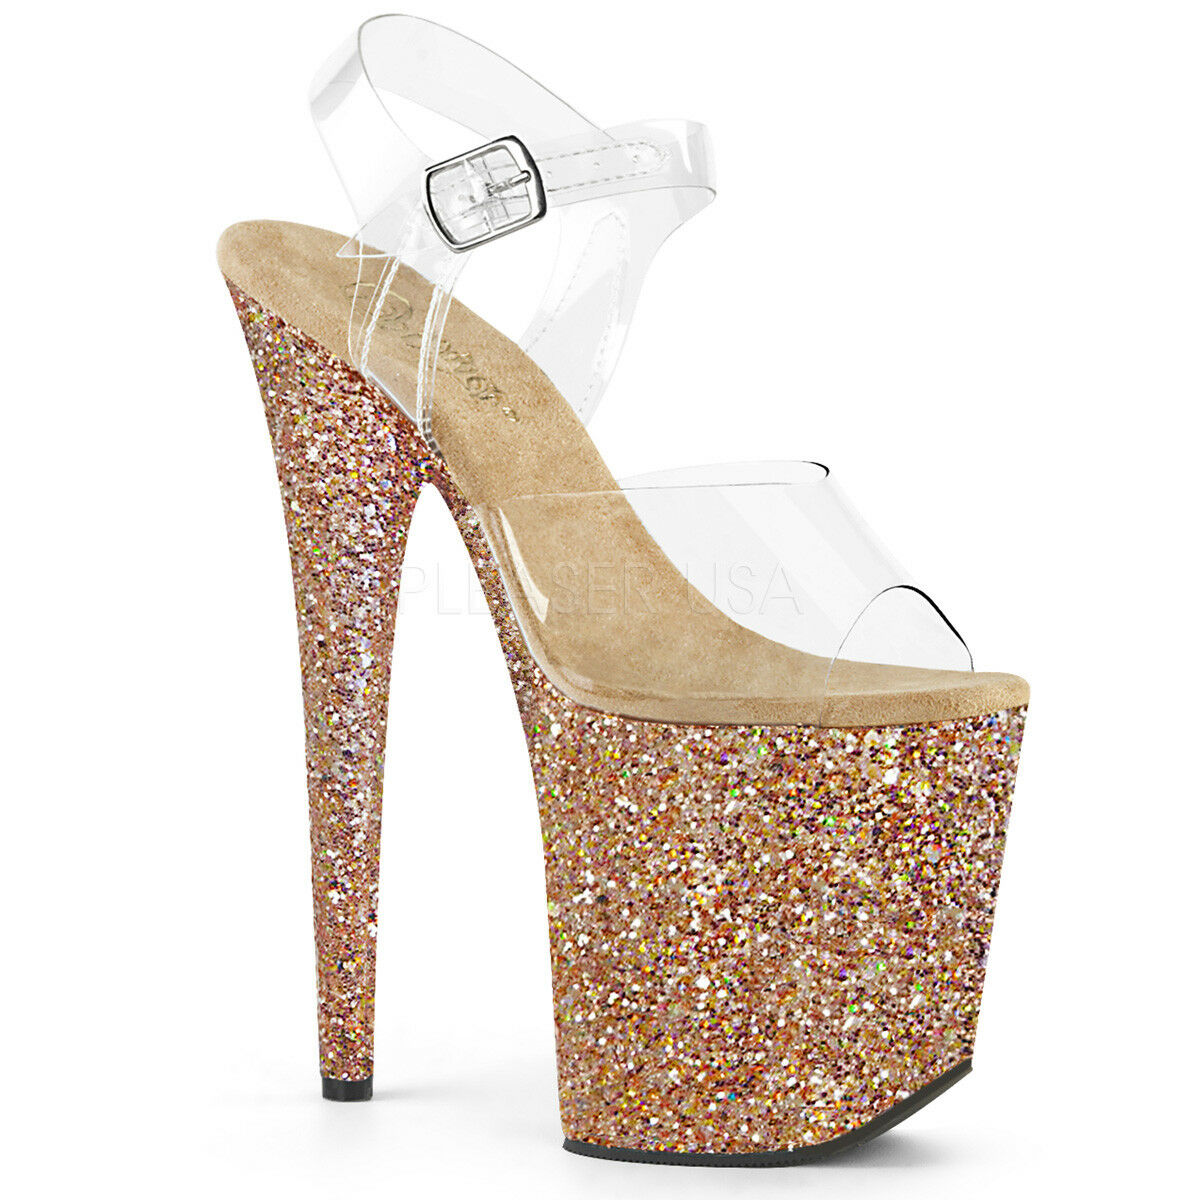 PLEASER FLAMINGO-808LG Sexy  8  High Heel Roes Roes Roes gold Glitter Platform Women shoes 7ea6ef